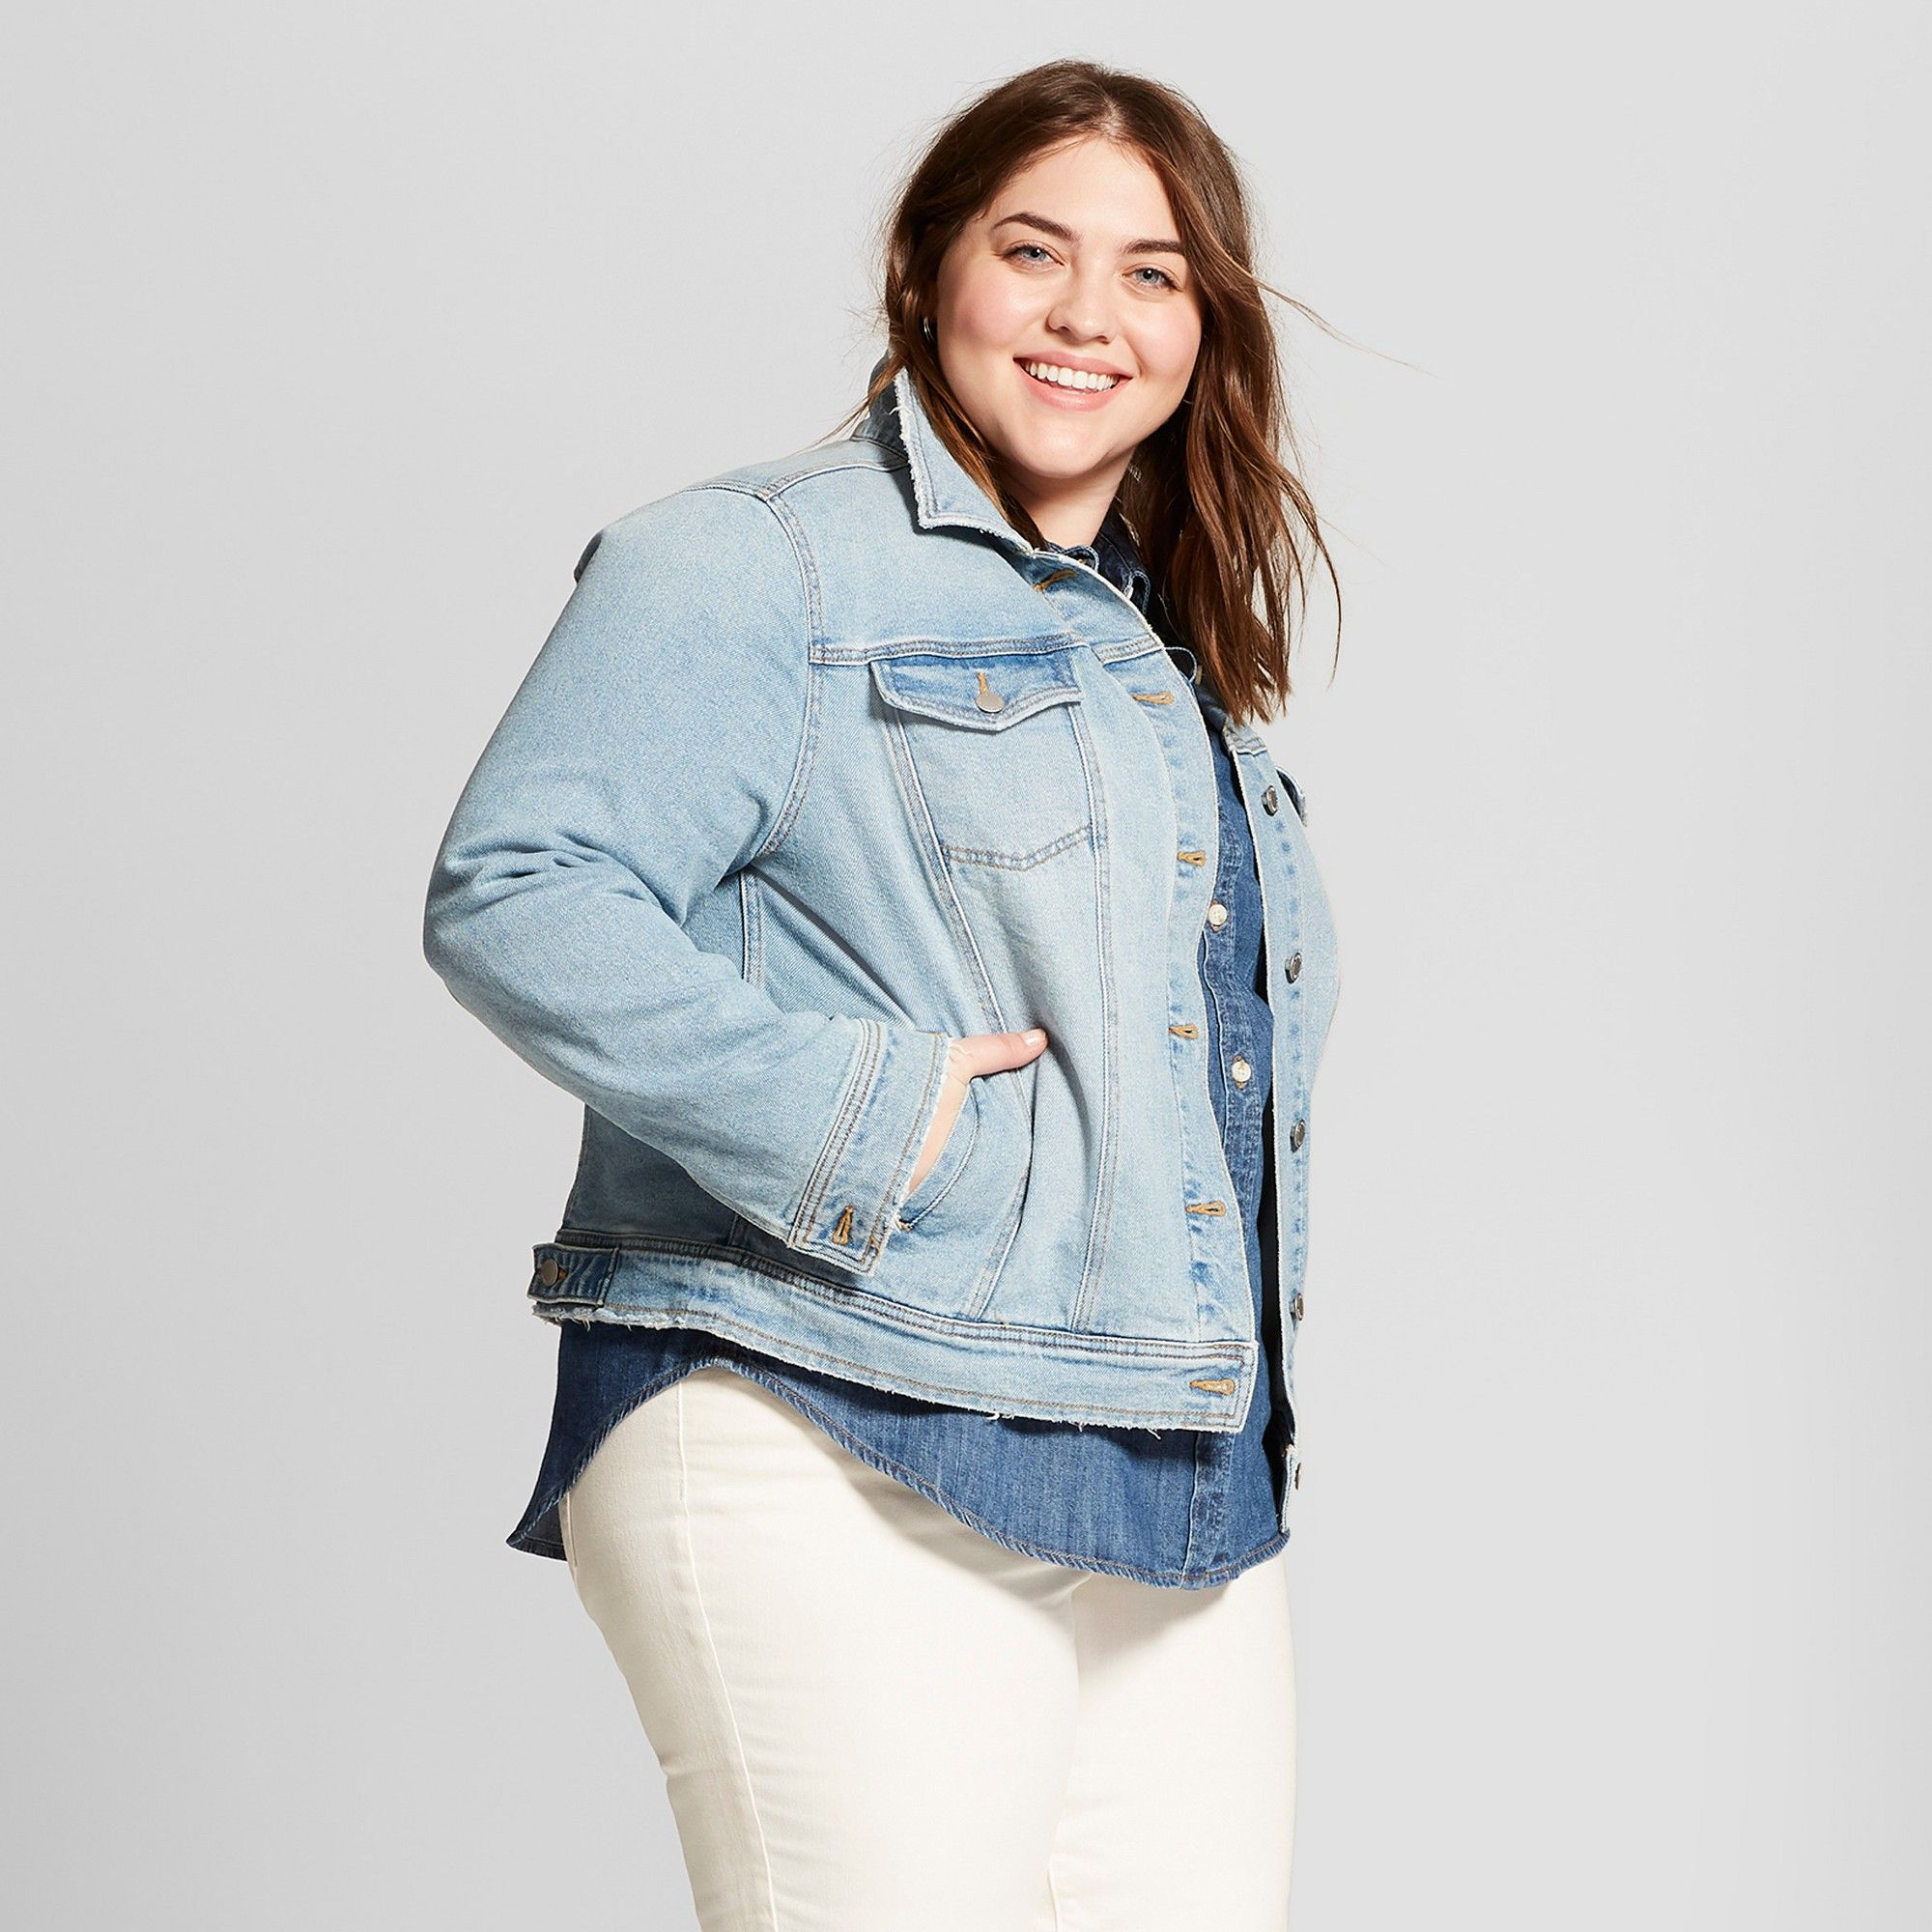 d78163a49ca Women s Plus Size Freeborn Denim Jacket - Universal Thread Light Wash 4X